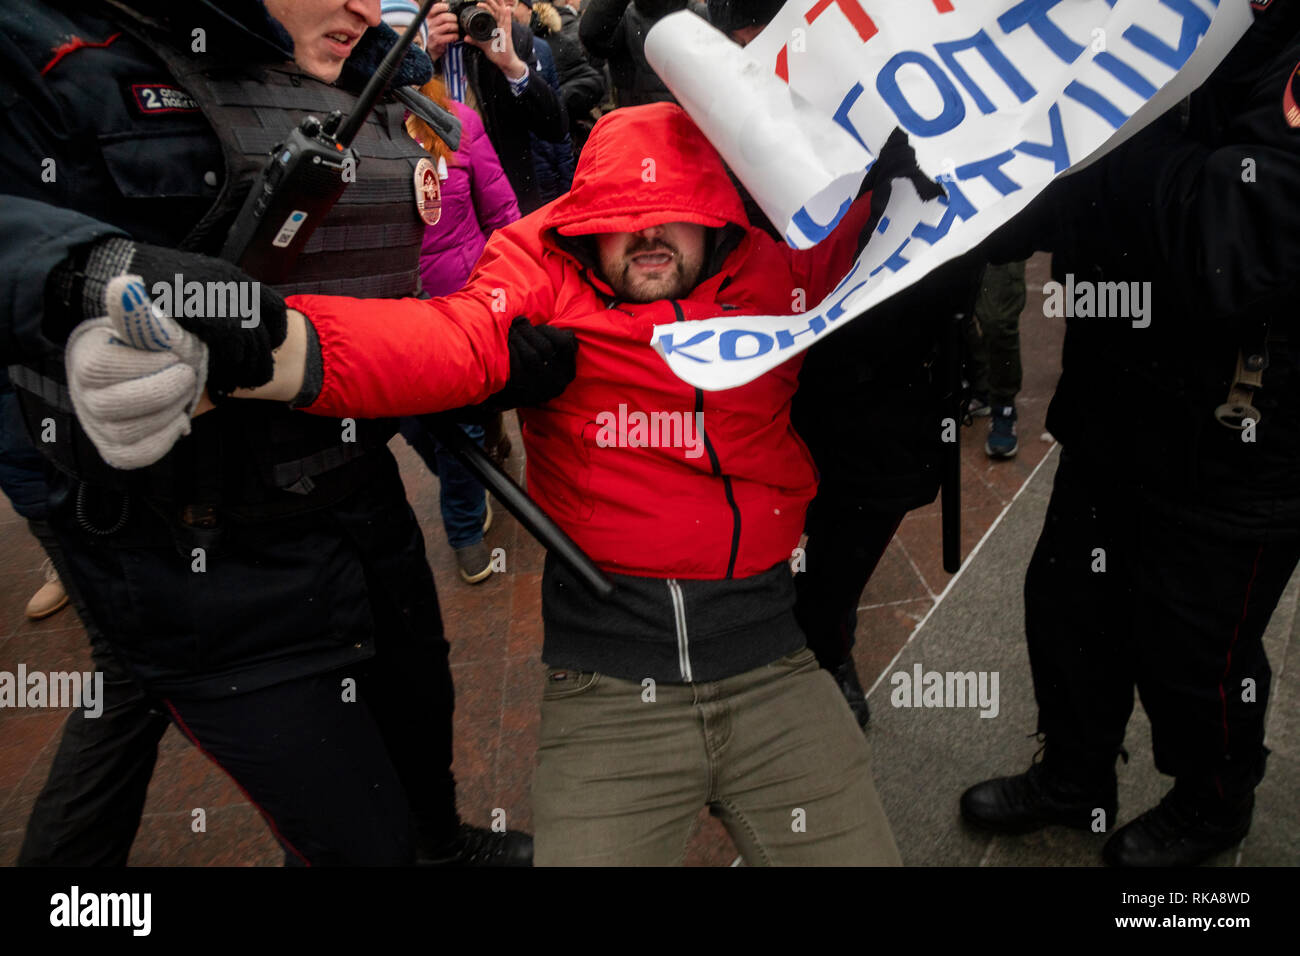 Moscow, Russia. 10 February, 2019: People take part in Mothers' Anger March, an event in support of political prisoners, in Tverskoy Boulevard of Moscow. Police officers detain a protester during a rally to demand freedom for political prisoners Credit: Nikolay Vinokurov/Alamy Live News Stock Photo